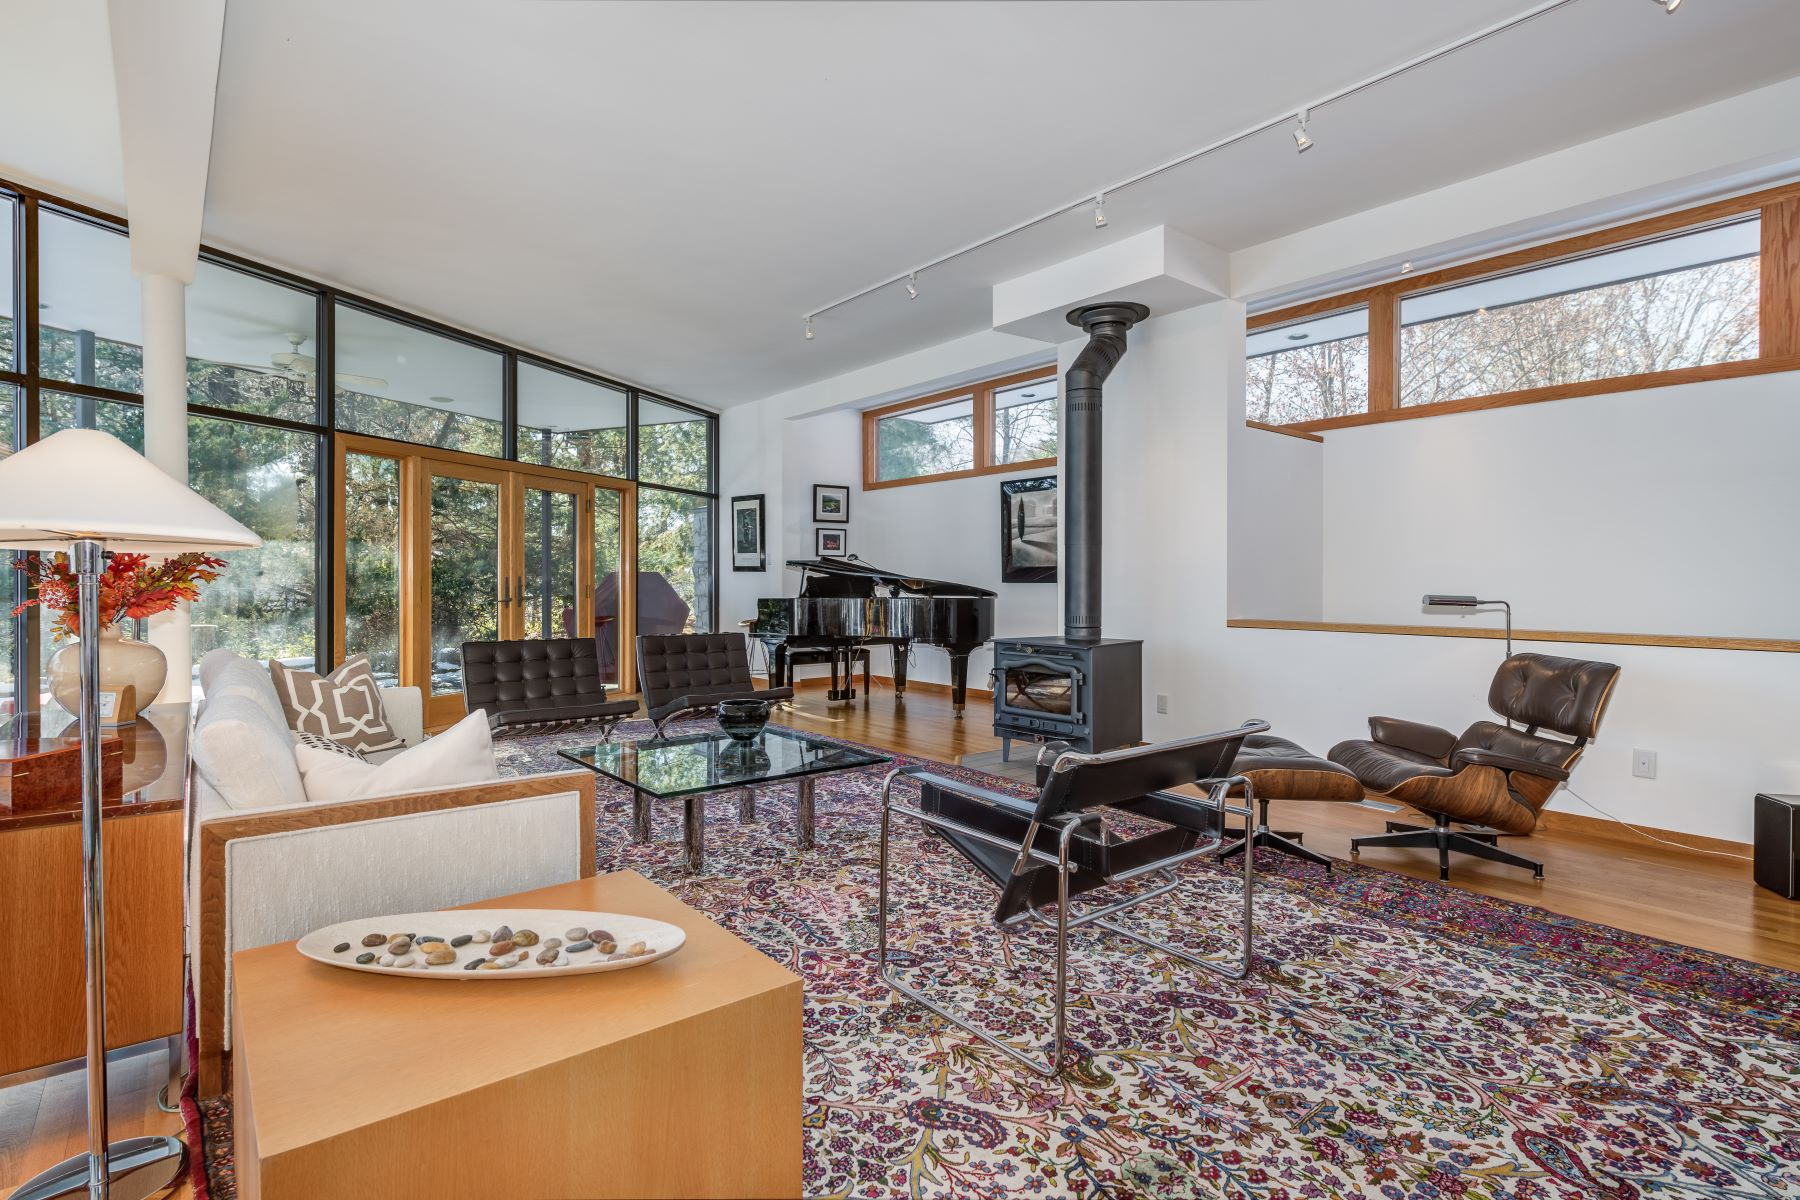 Additional photo for property listing at Contemporary Residence Designed by Bill Bowersox 6682 Clifton Bluffs Court St. Louis, Missouri 63129 United States